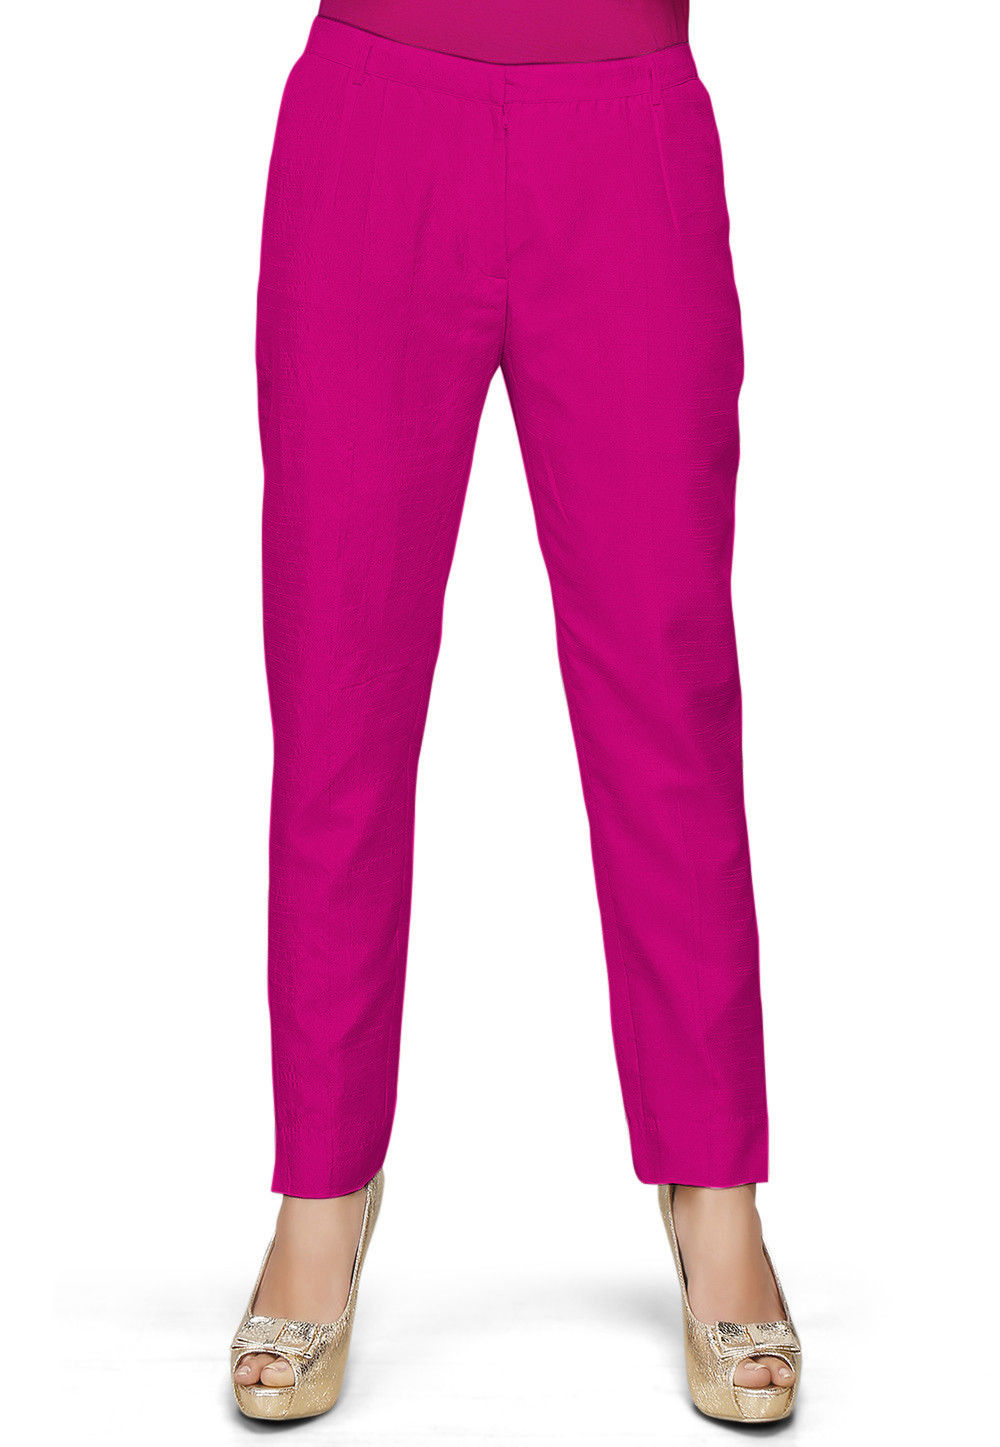 Solid Color Dupion Silk Pant in Fuchsia